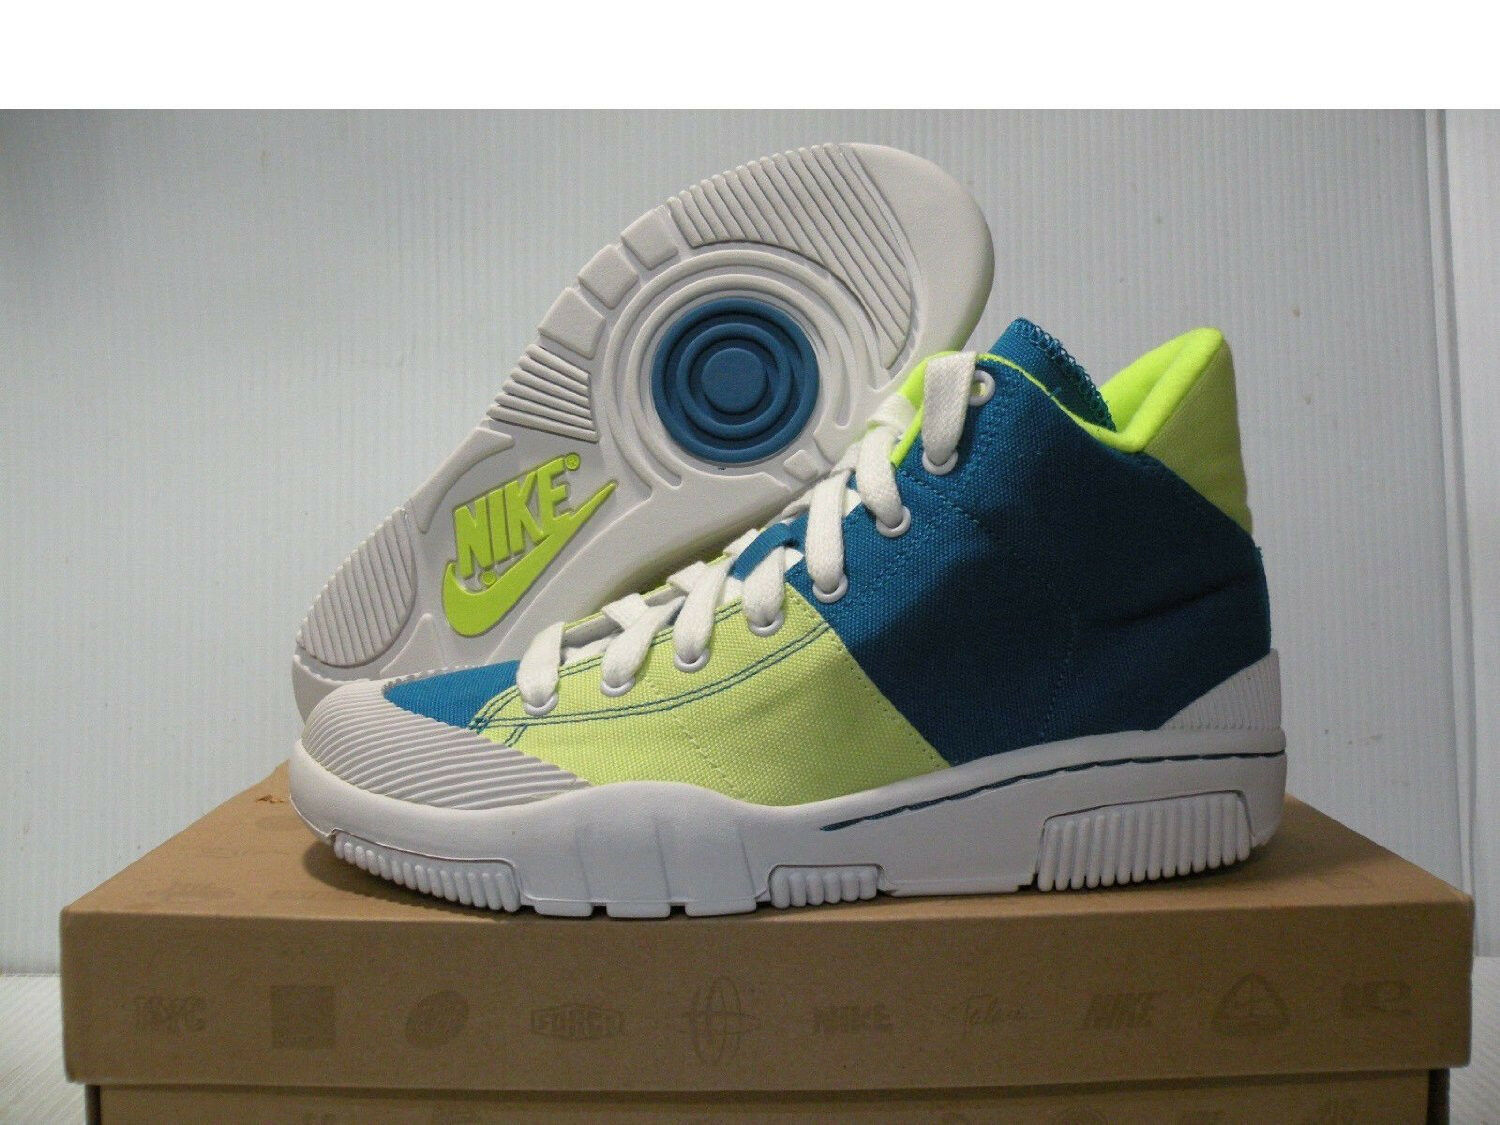 NIKE OUTBREAK HIGH SNEAKERS WOMEN SHOES BLUE/GREEN 318635-411 SIZE 10 NEW